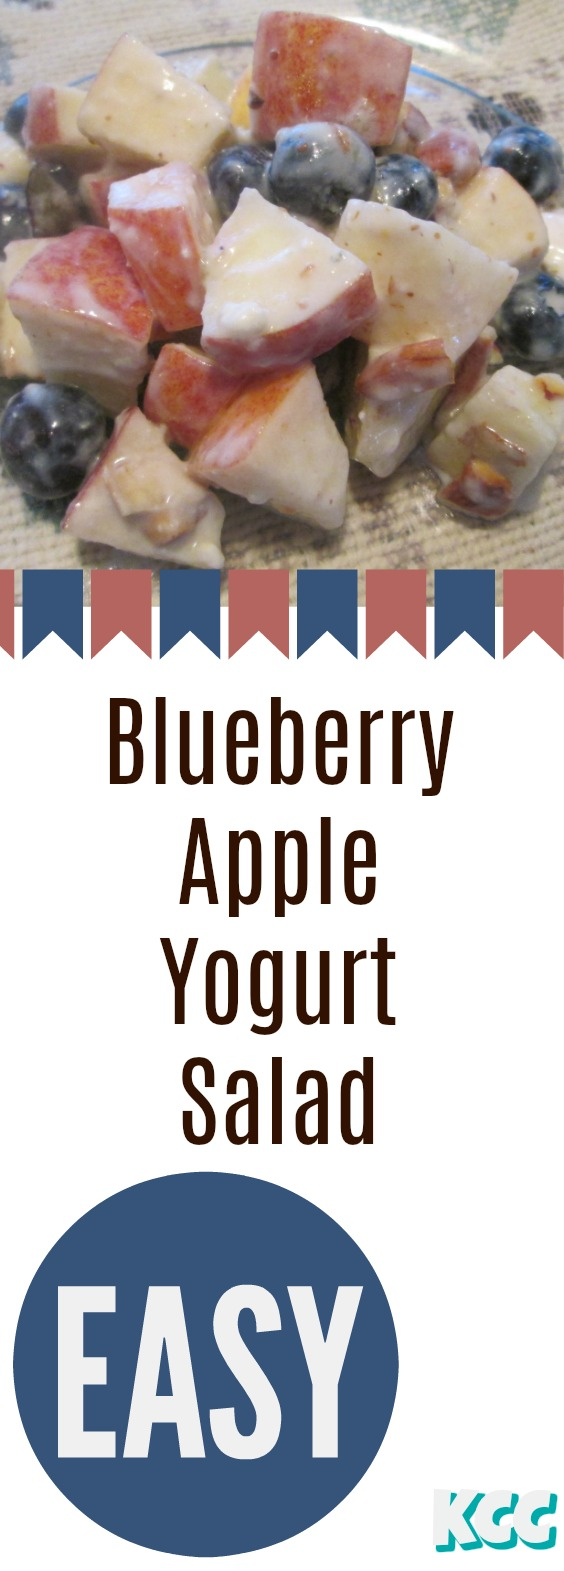 Blueberry Apple Yogurt Salad Recipe